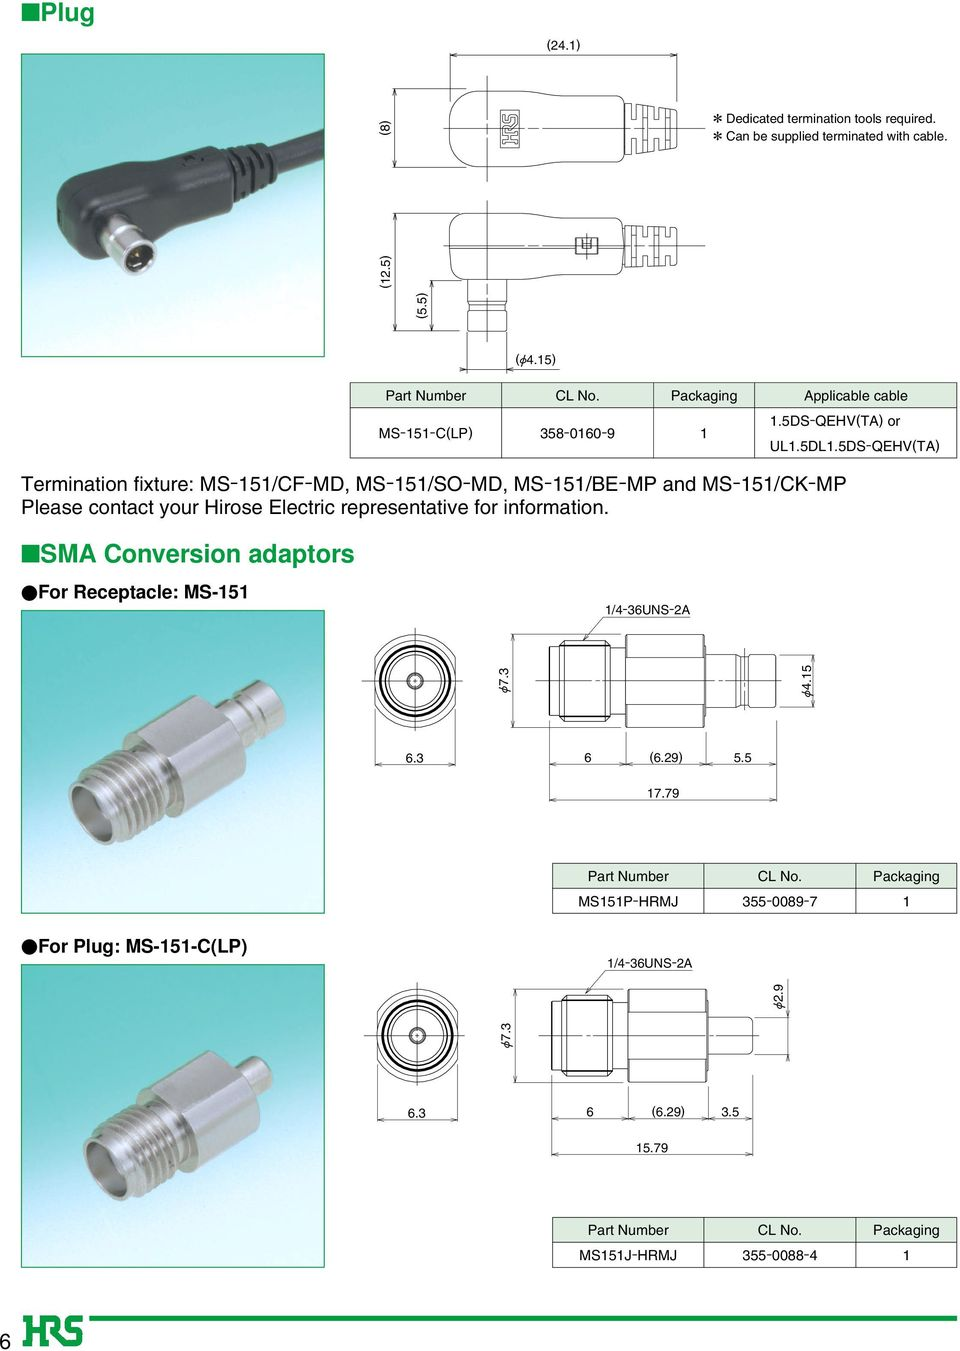 5DS-QEHV(T) Termination fixture: /F-MD, /SO-MD, /E-MP and /K-MP Please contact your Hirose Electric representative